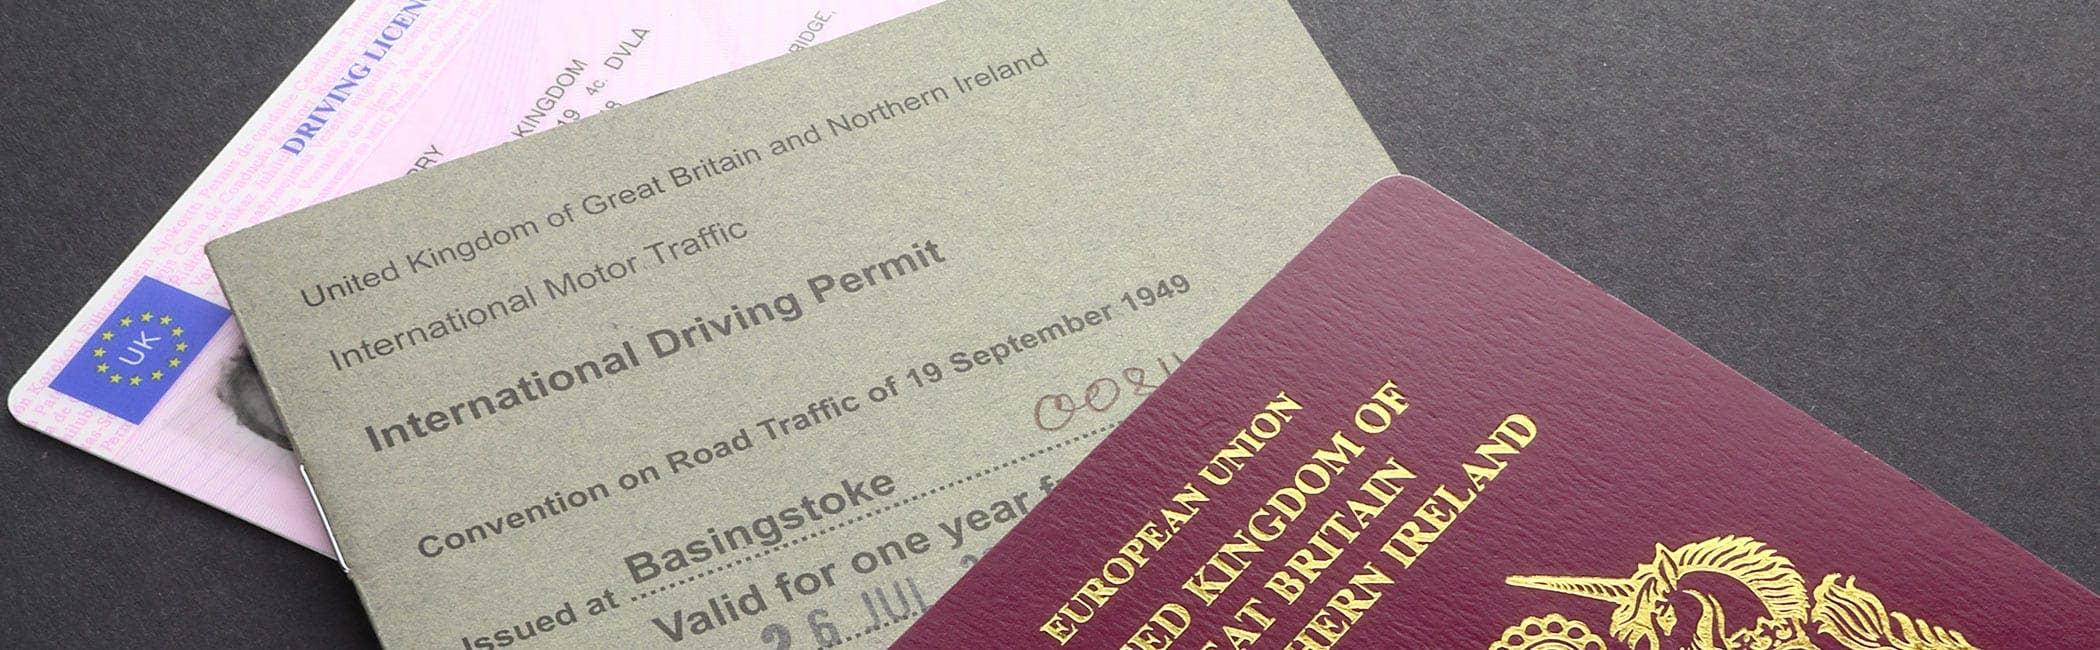 Do You Know How to Spot a Fake ID? | UK Licensing Law Guidance